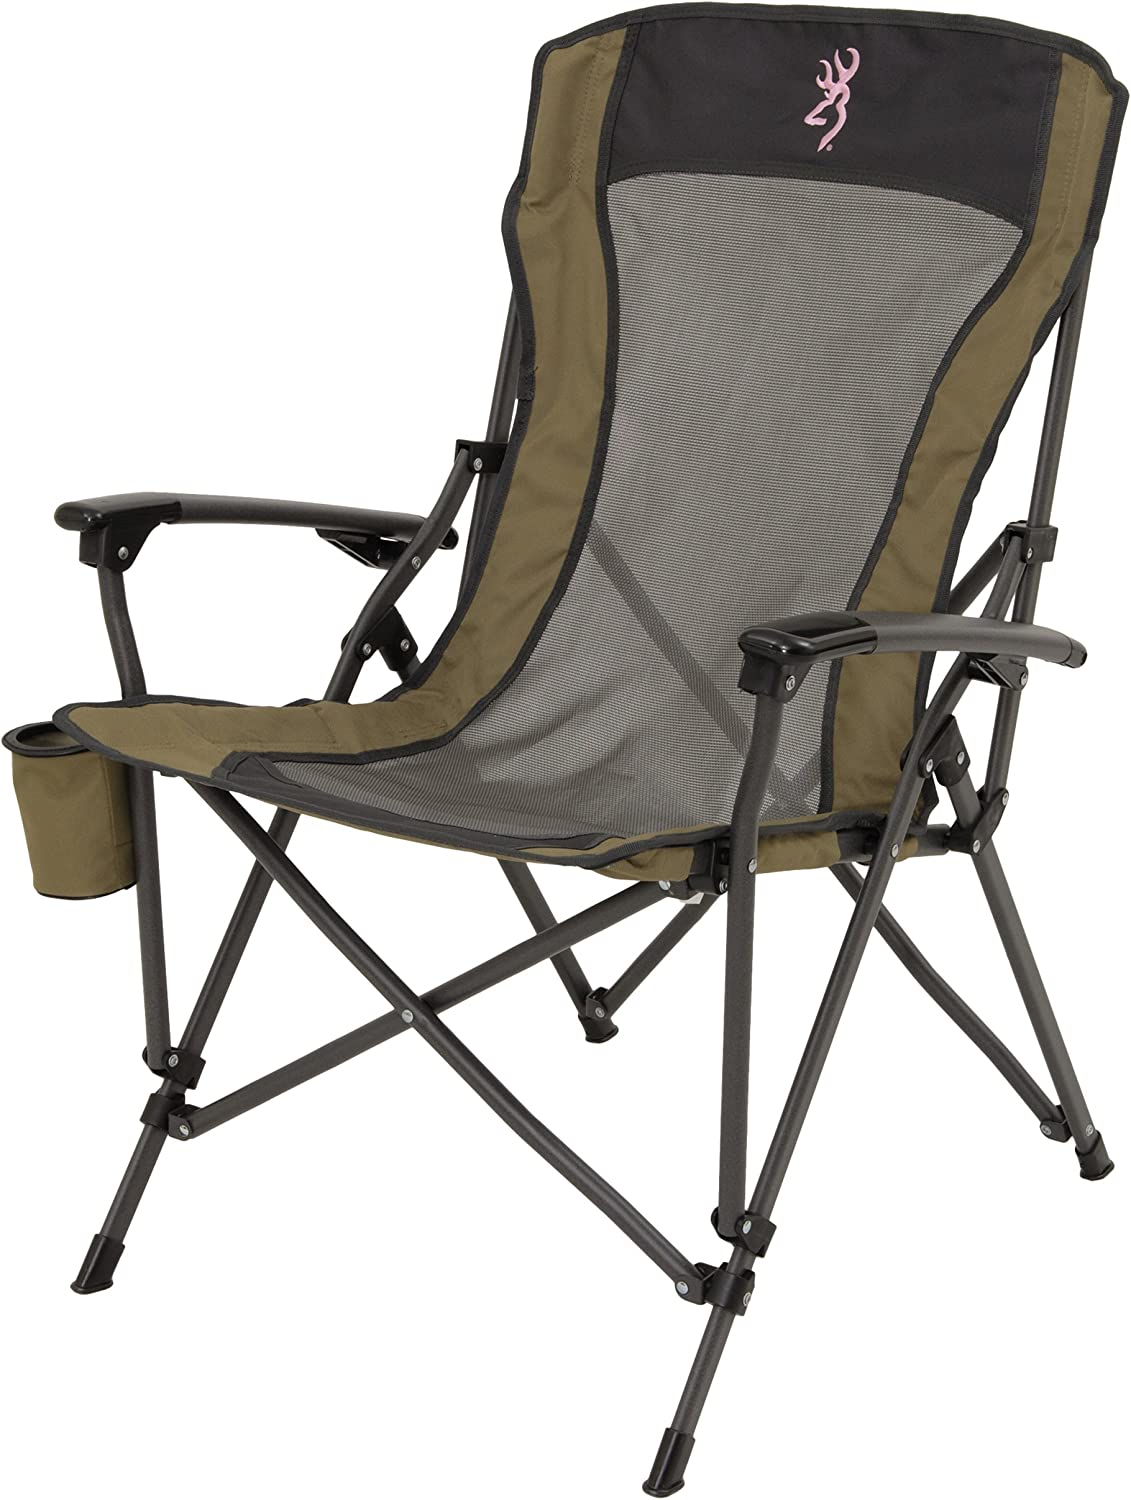 Browning Camping Fireside Chair